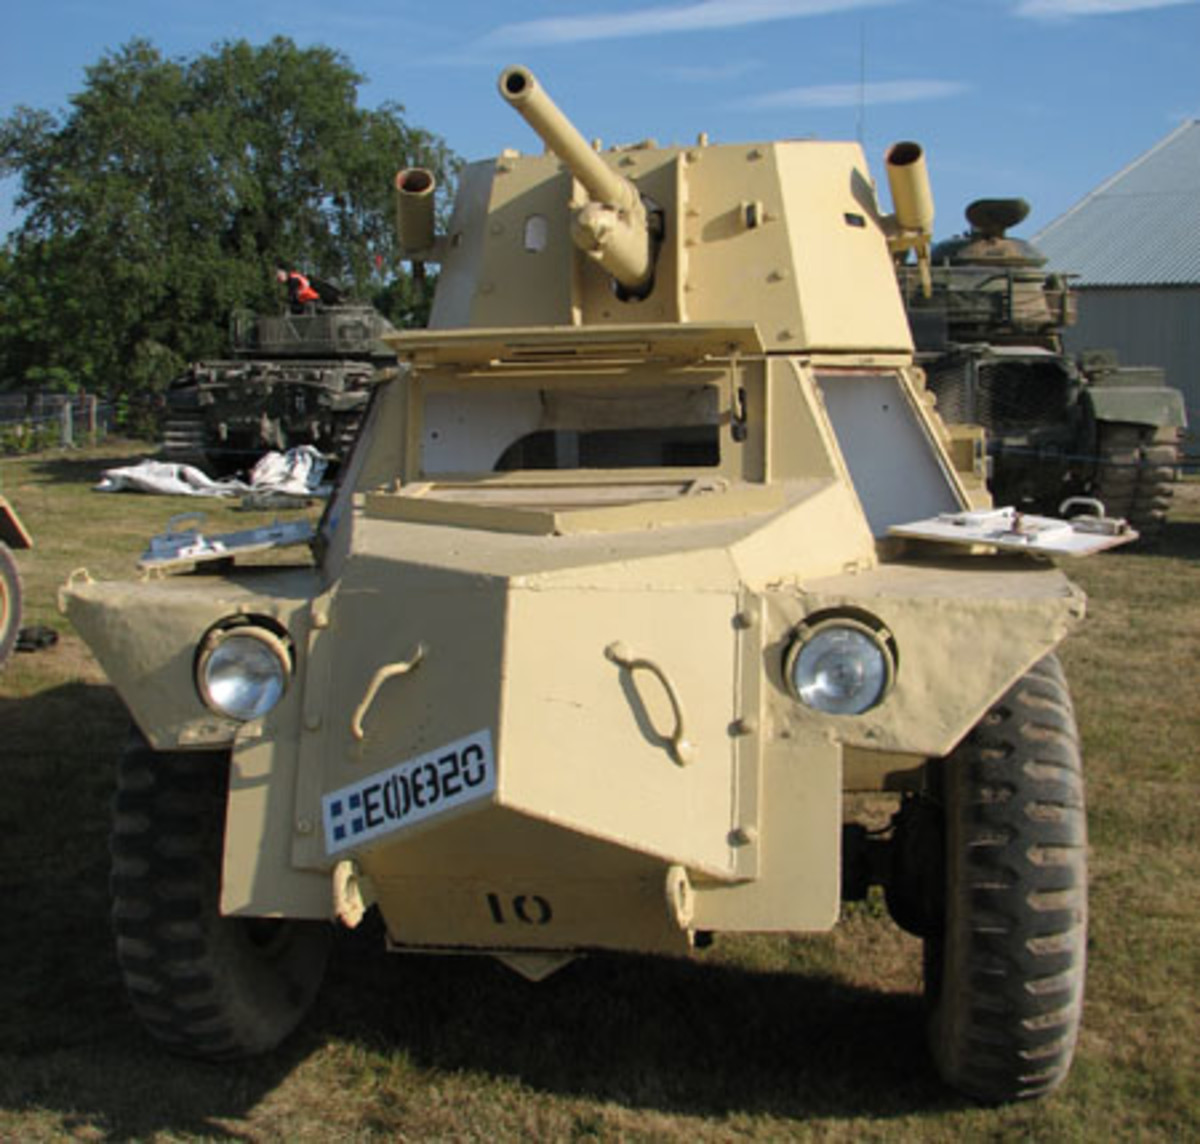 """The turret-mounted two-pound gun had elevation and depression and with full 360 degree traverse could engage targets easily. The gun fired """"fixed ammunition"""" of the type used by the field gun in the anti-tank role which made it easier and faster to load. The recuperator under the barrel was a prominent feature."""